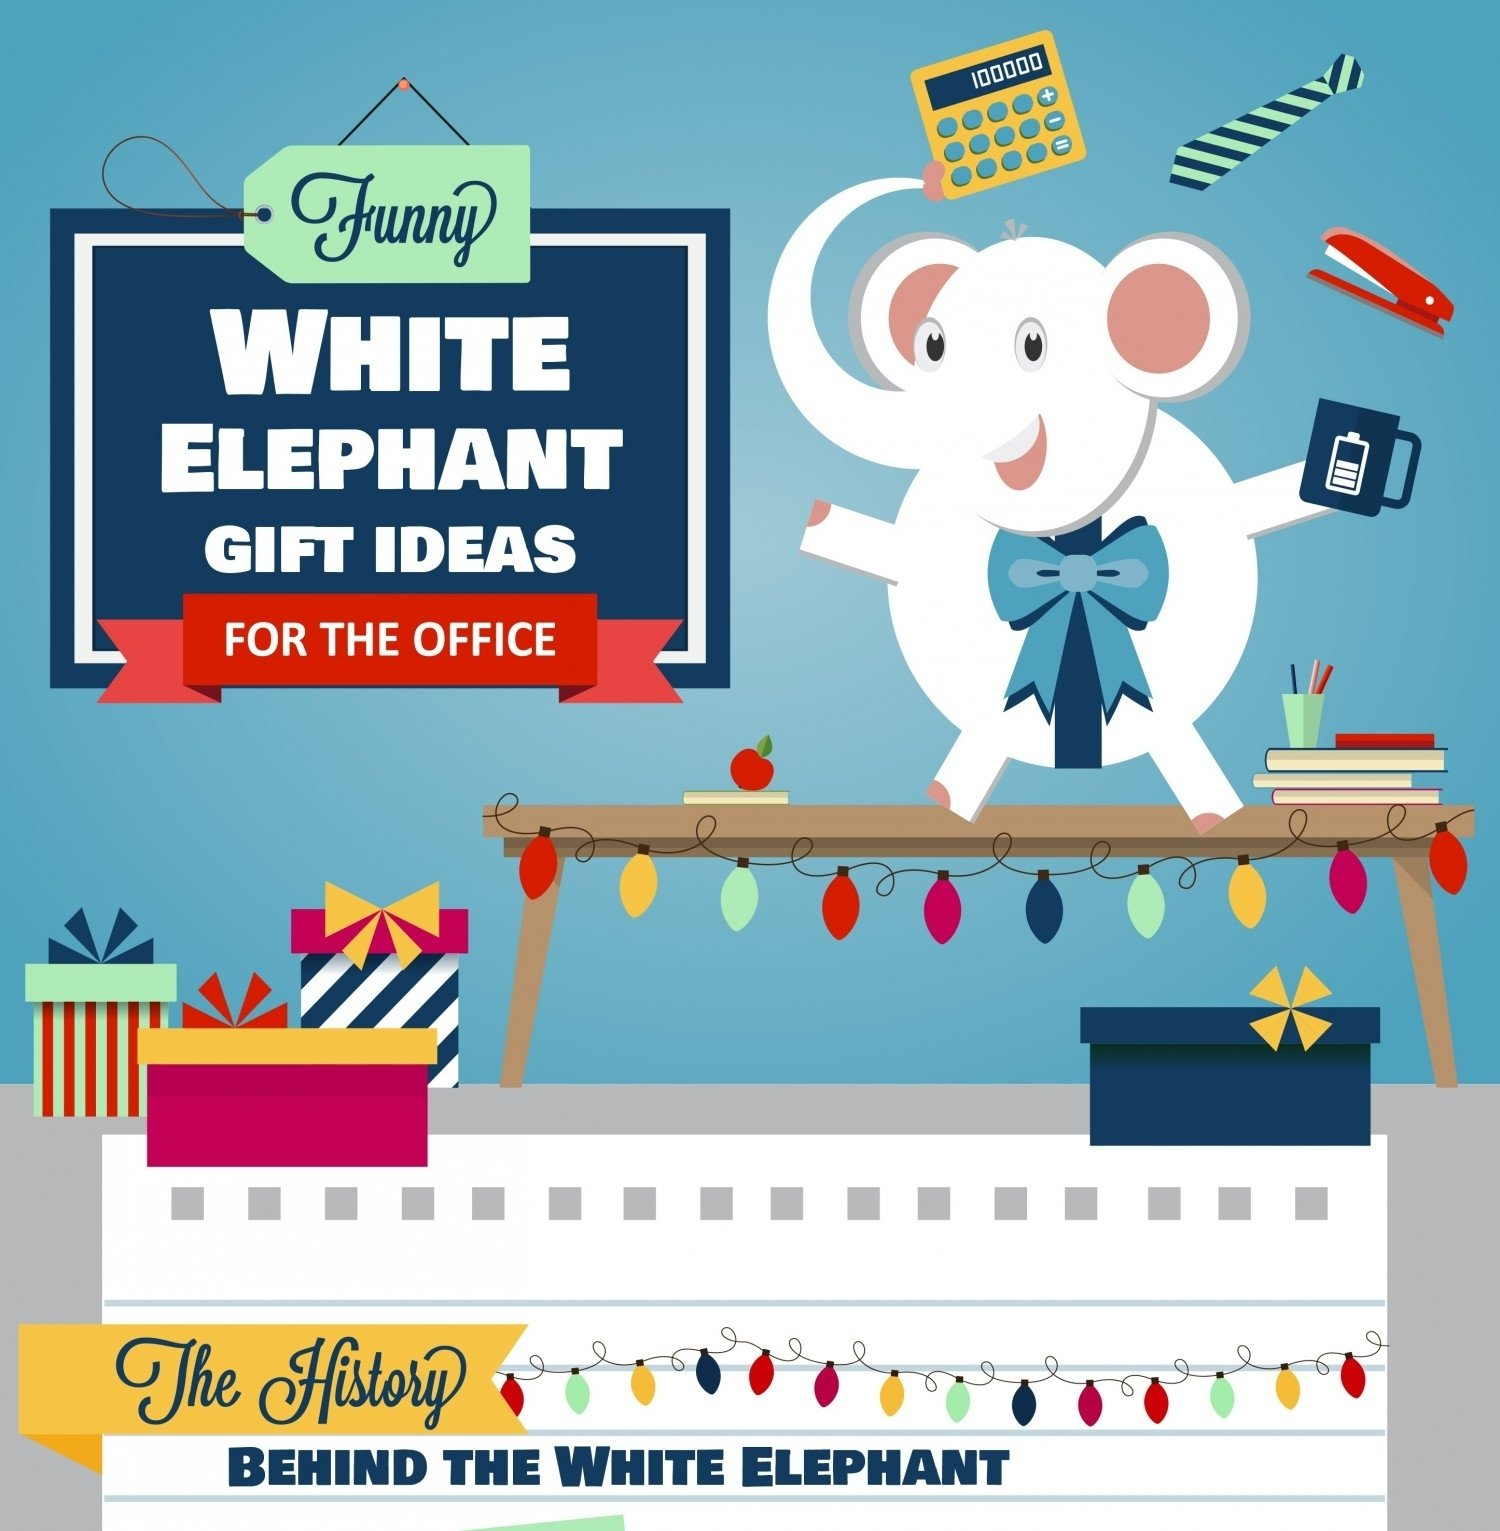 10 Unique Gift Ideas For The Office funny white elephant gift ideas for the office visual ly 2020